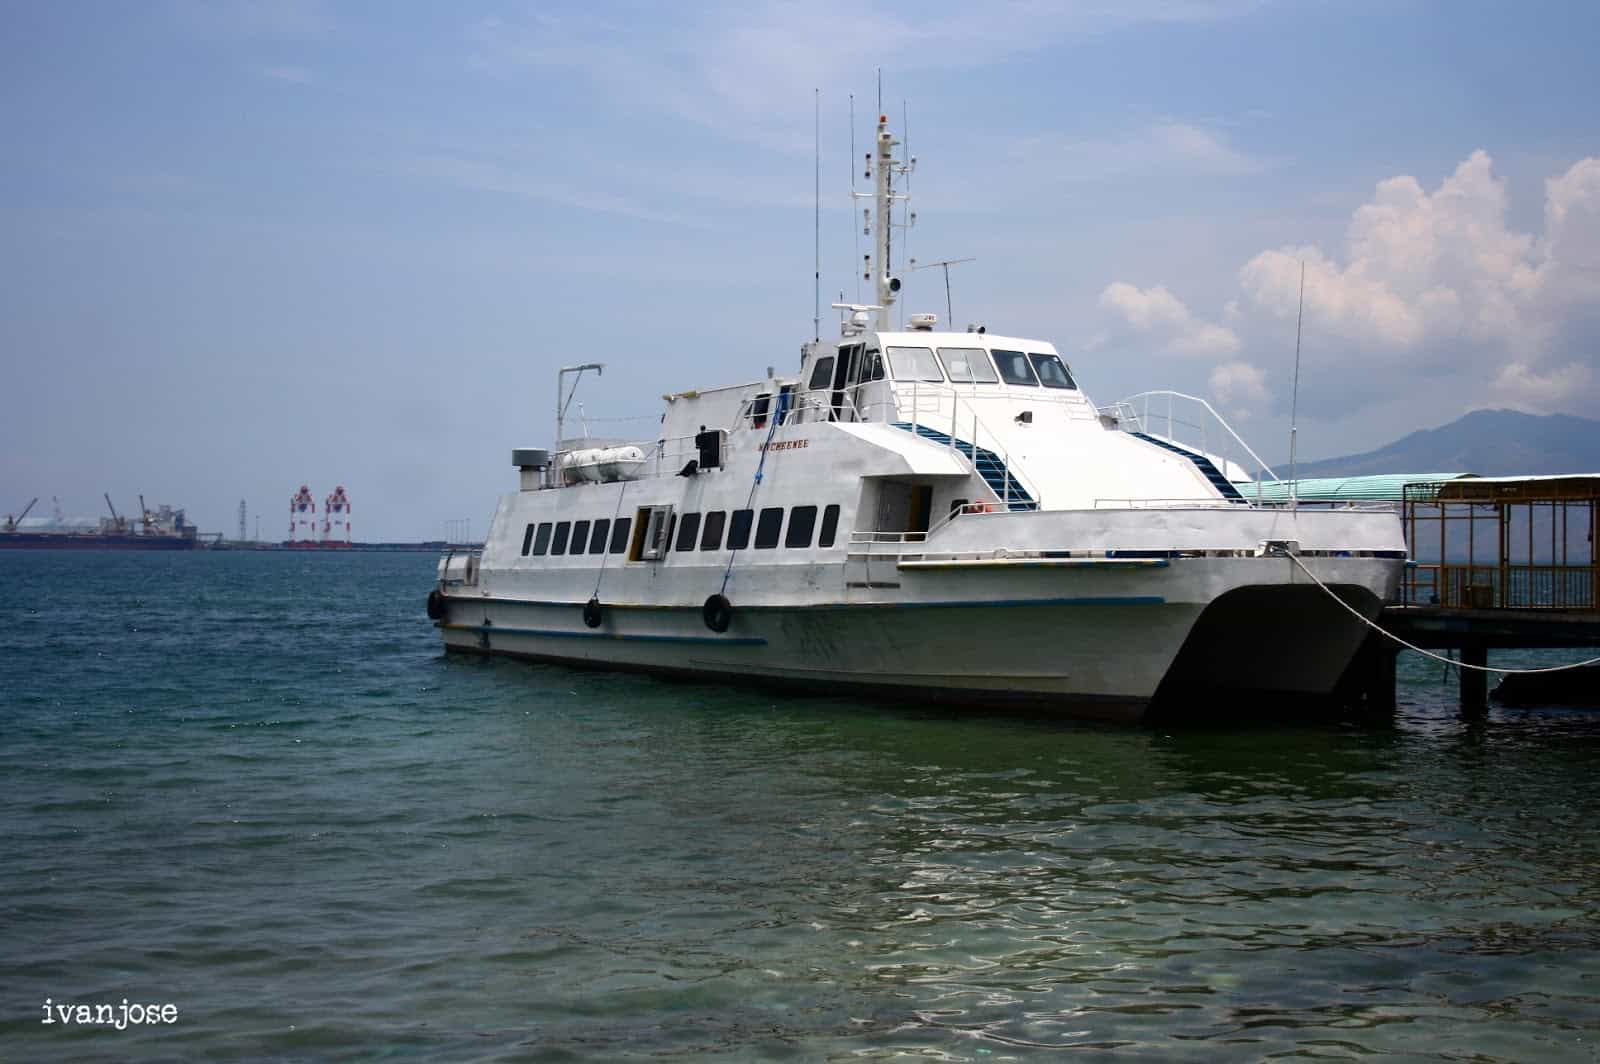 The ferry that would take us to Grande Island Resort